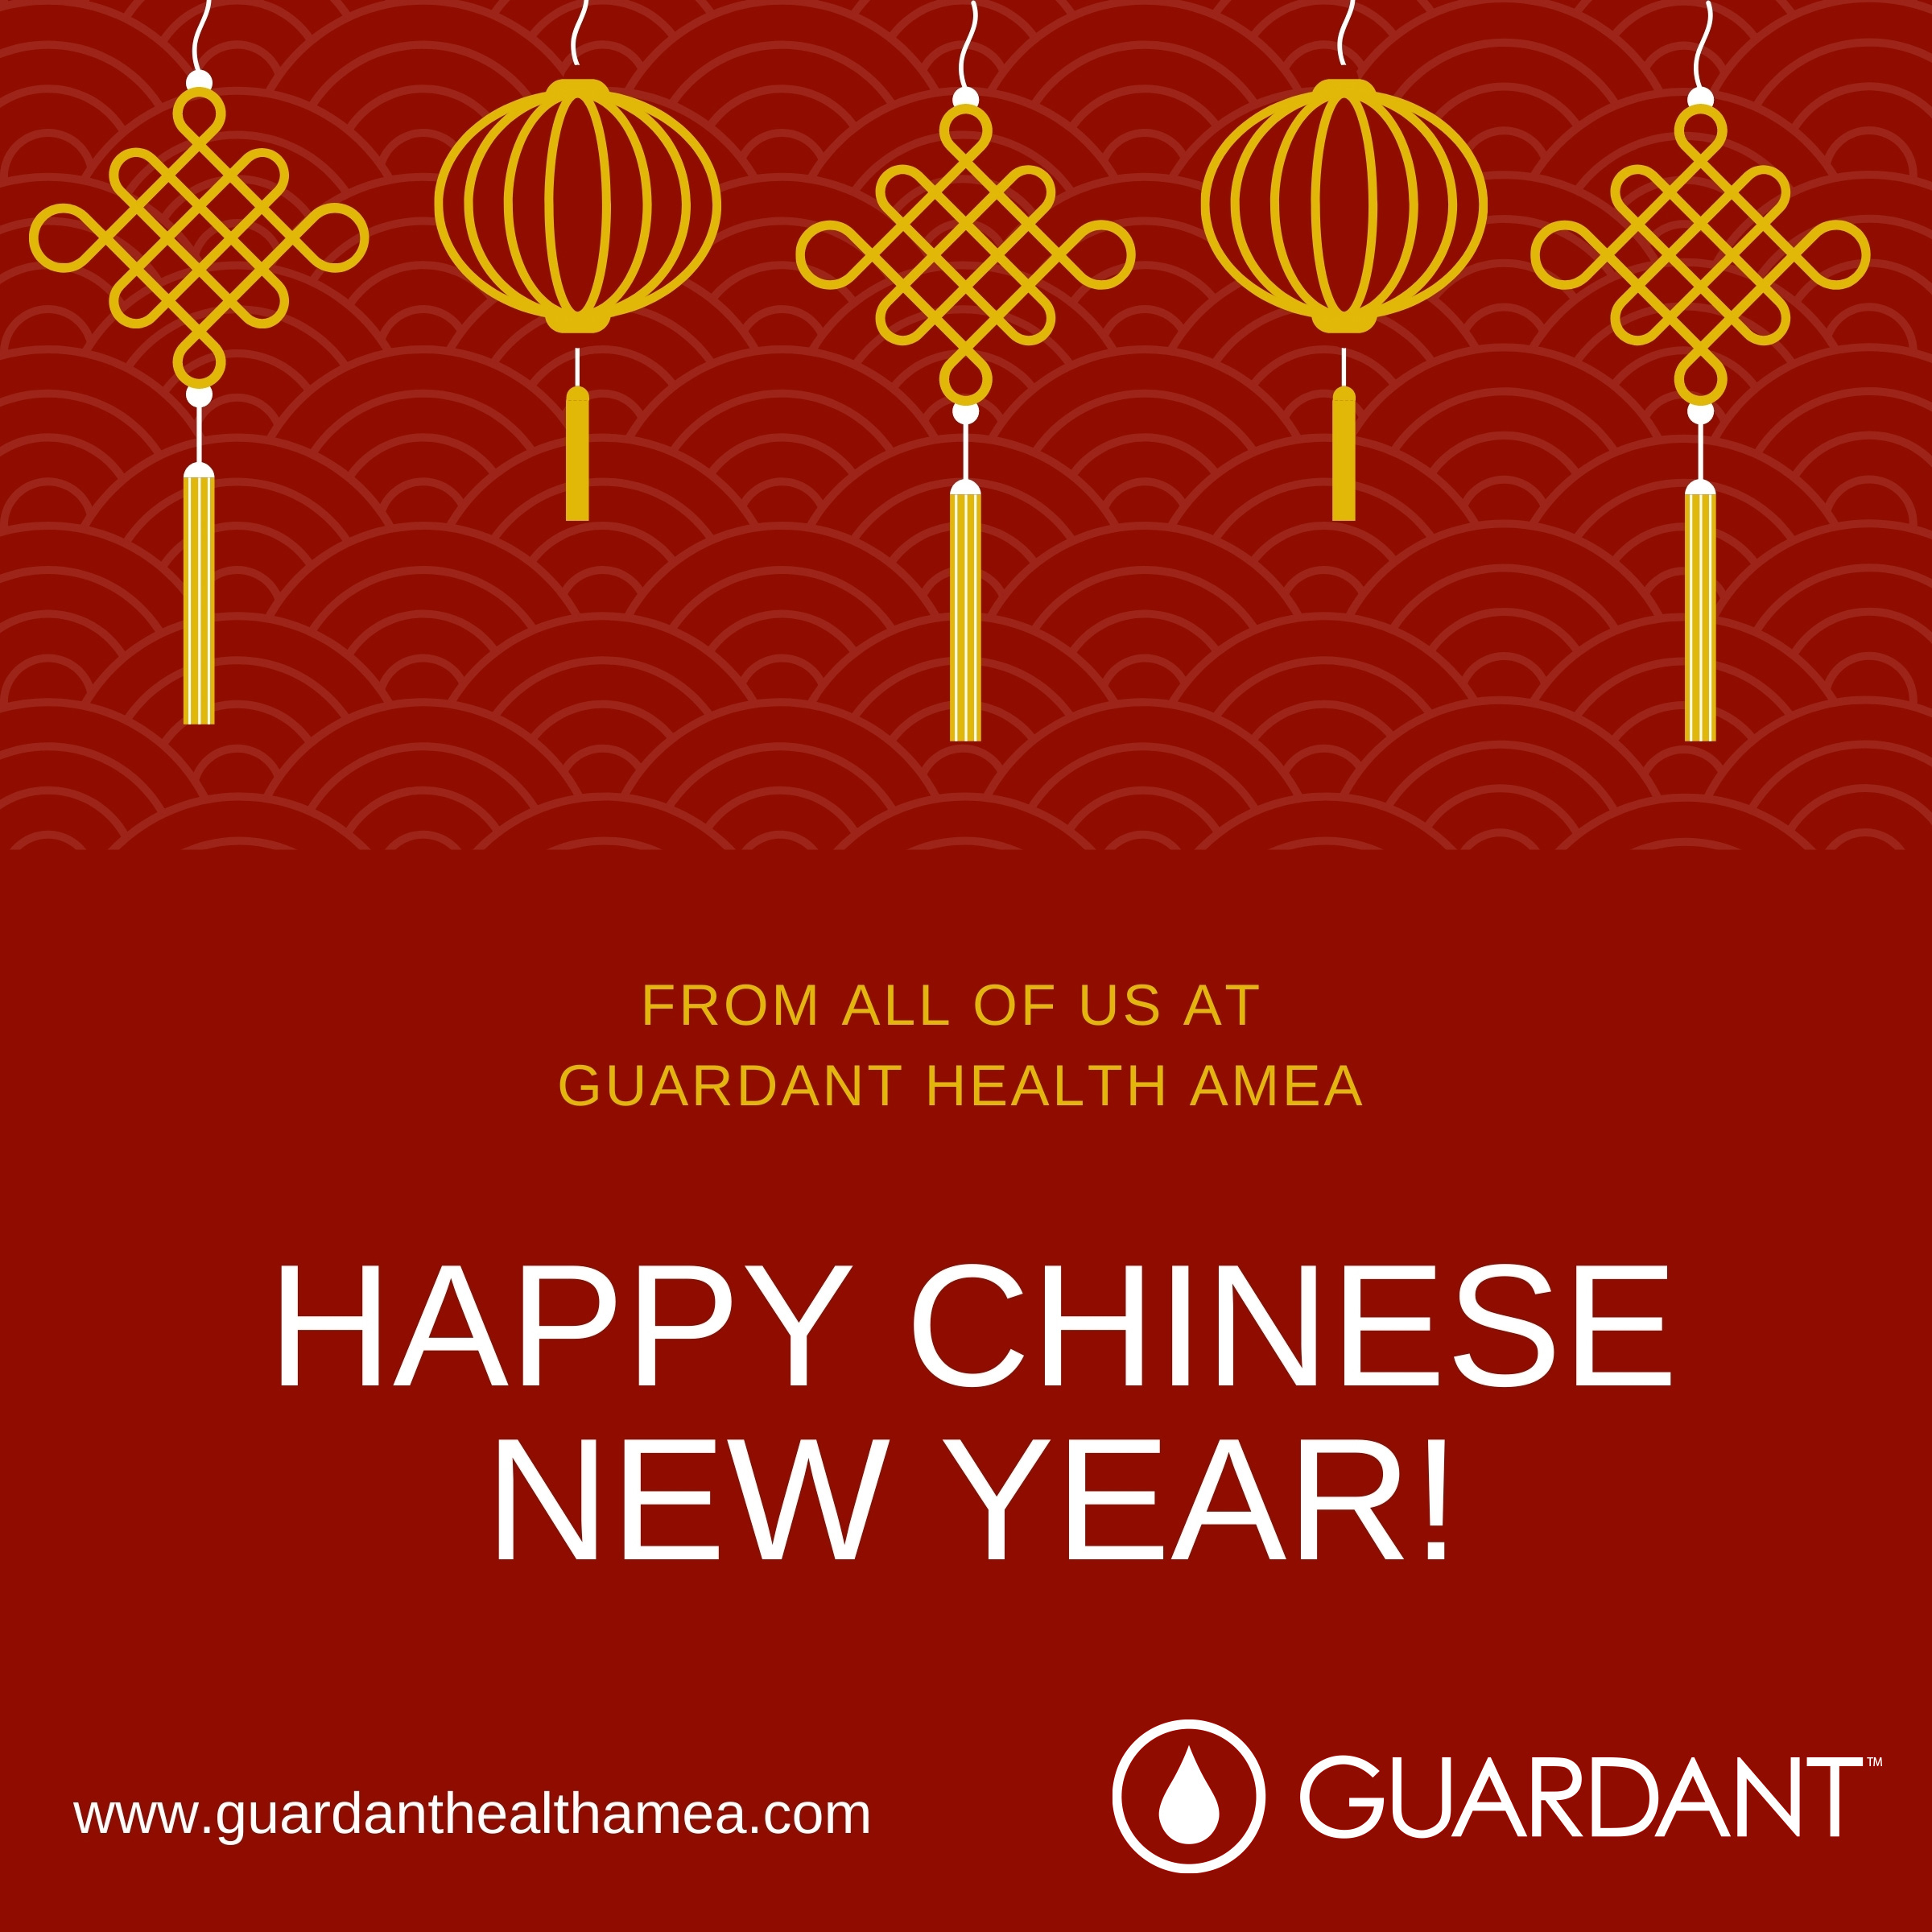 Happy Chinese New Year from all of us at www.guardanthealthamea.com